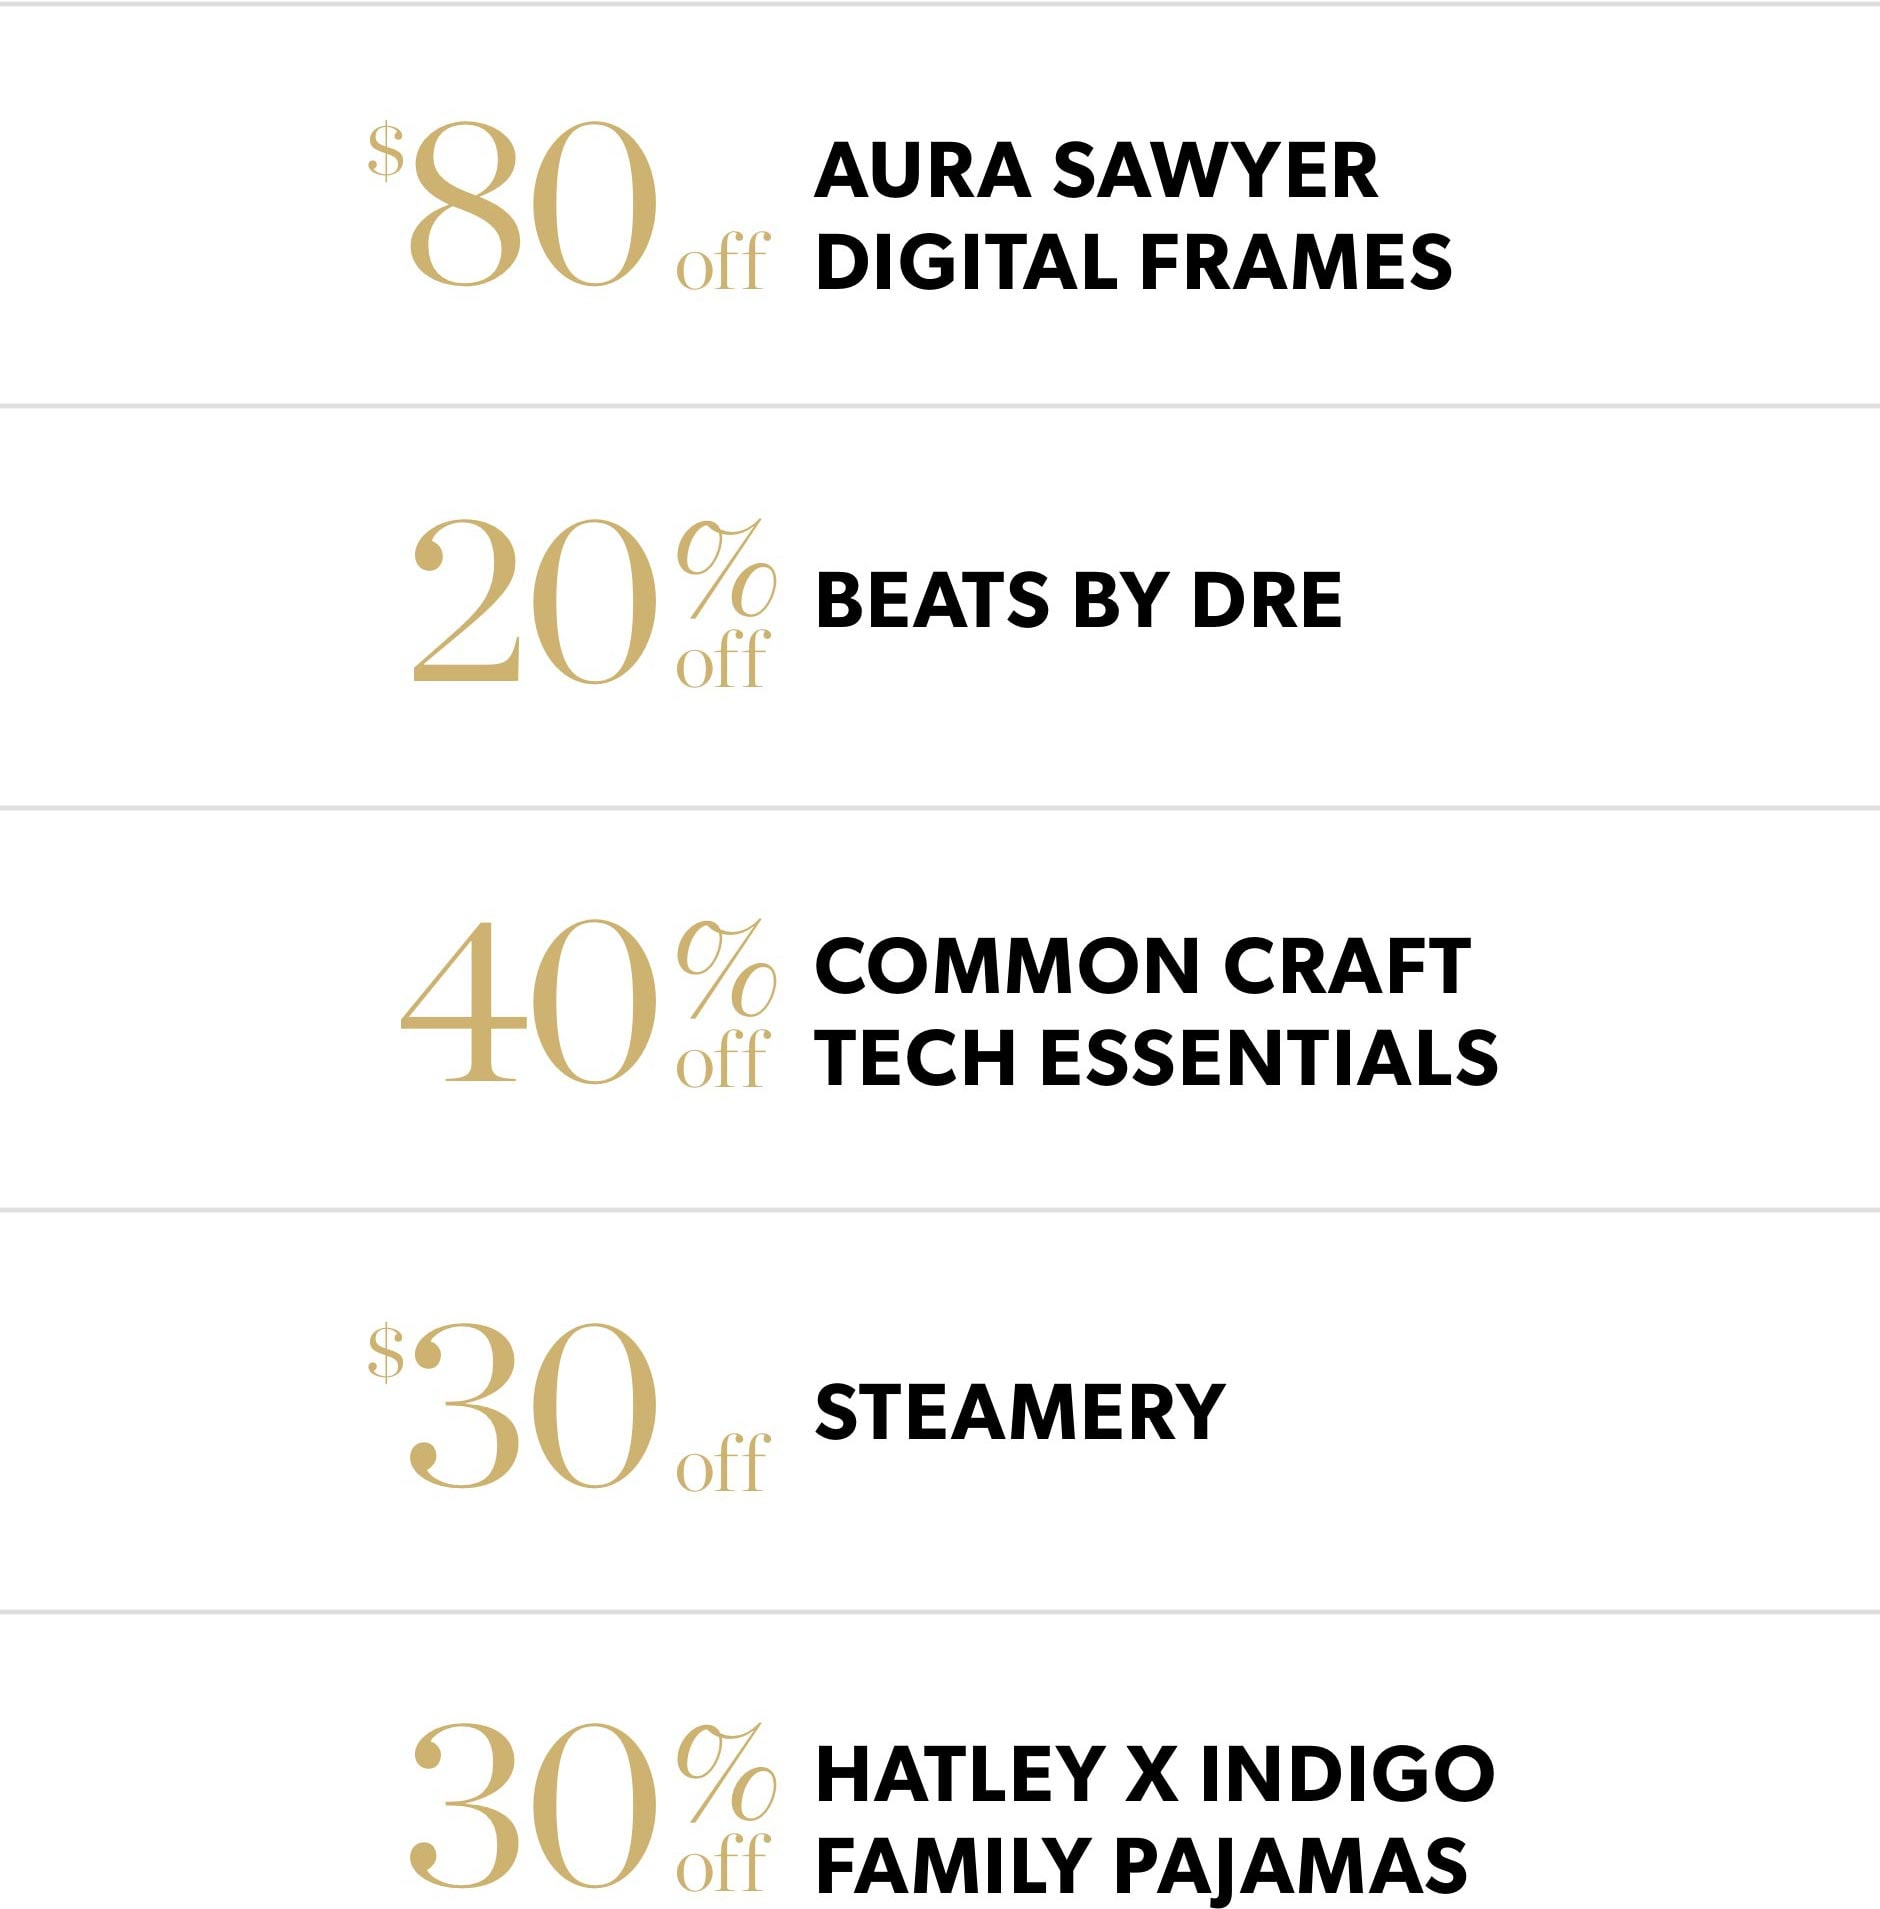 Black Friday In-Store Only: $80 off Aura Sawyer digital frames, 20% off Beats by Dre, 40% off Common Craft tech essentials, $30 off Steamery, & 30% off Hatley x Indigo family pajamas